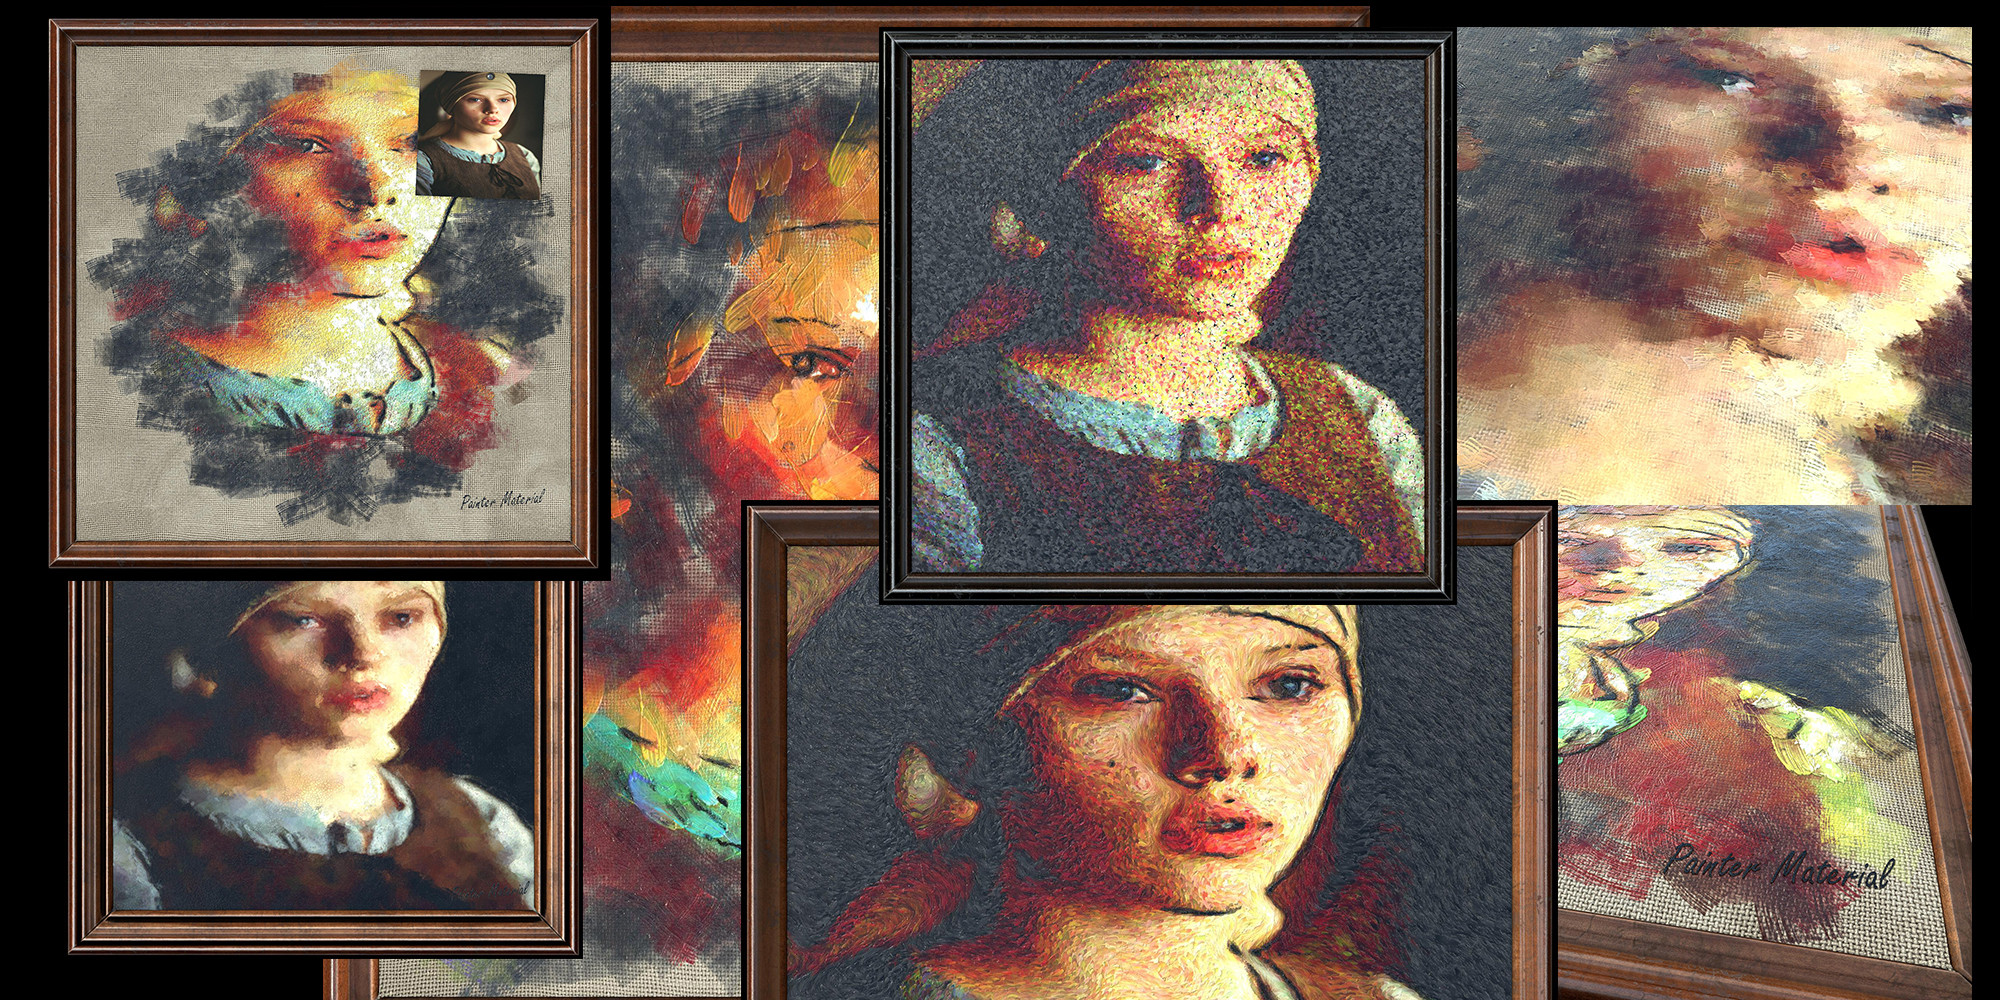 tribute to Vermeer and Scarlet Johansonn, and presets of the Painter Material